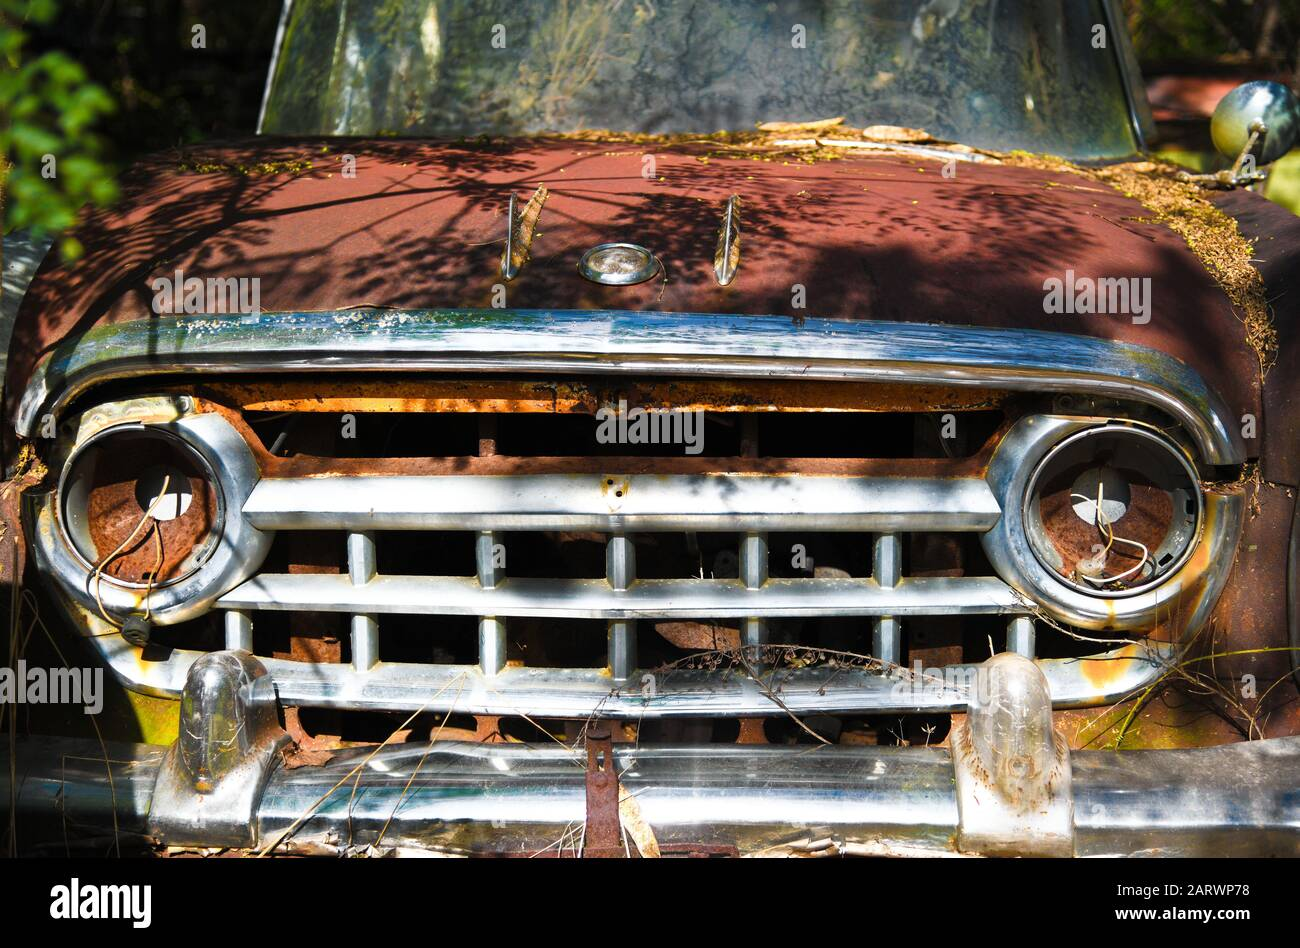 Close-up Image of the Front of an Old Scrap Truck in a Junk Yard Stock Photo